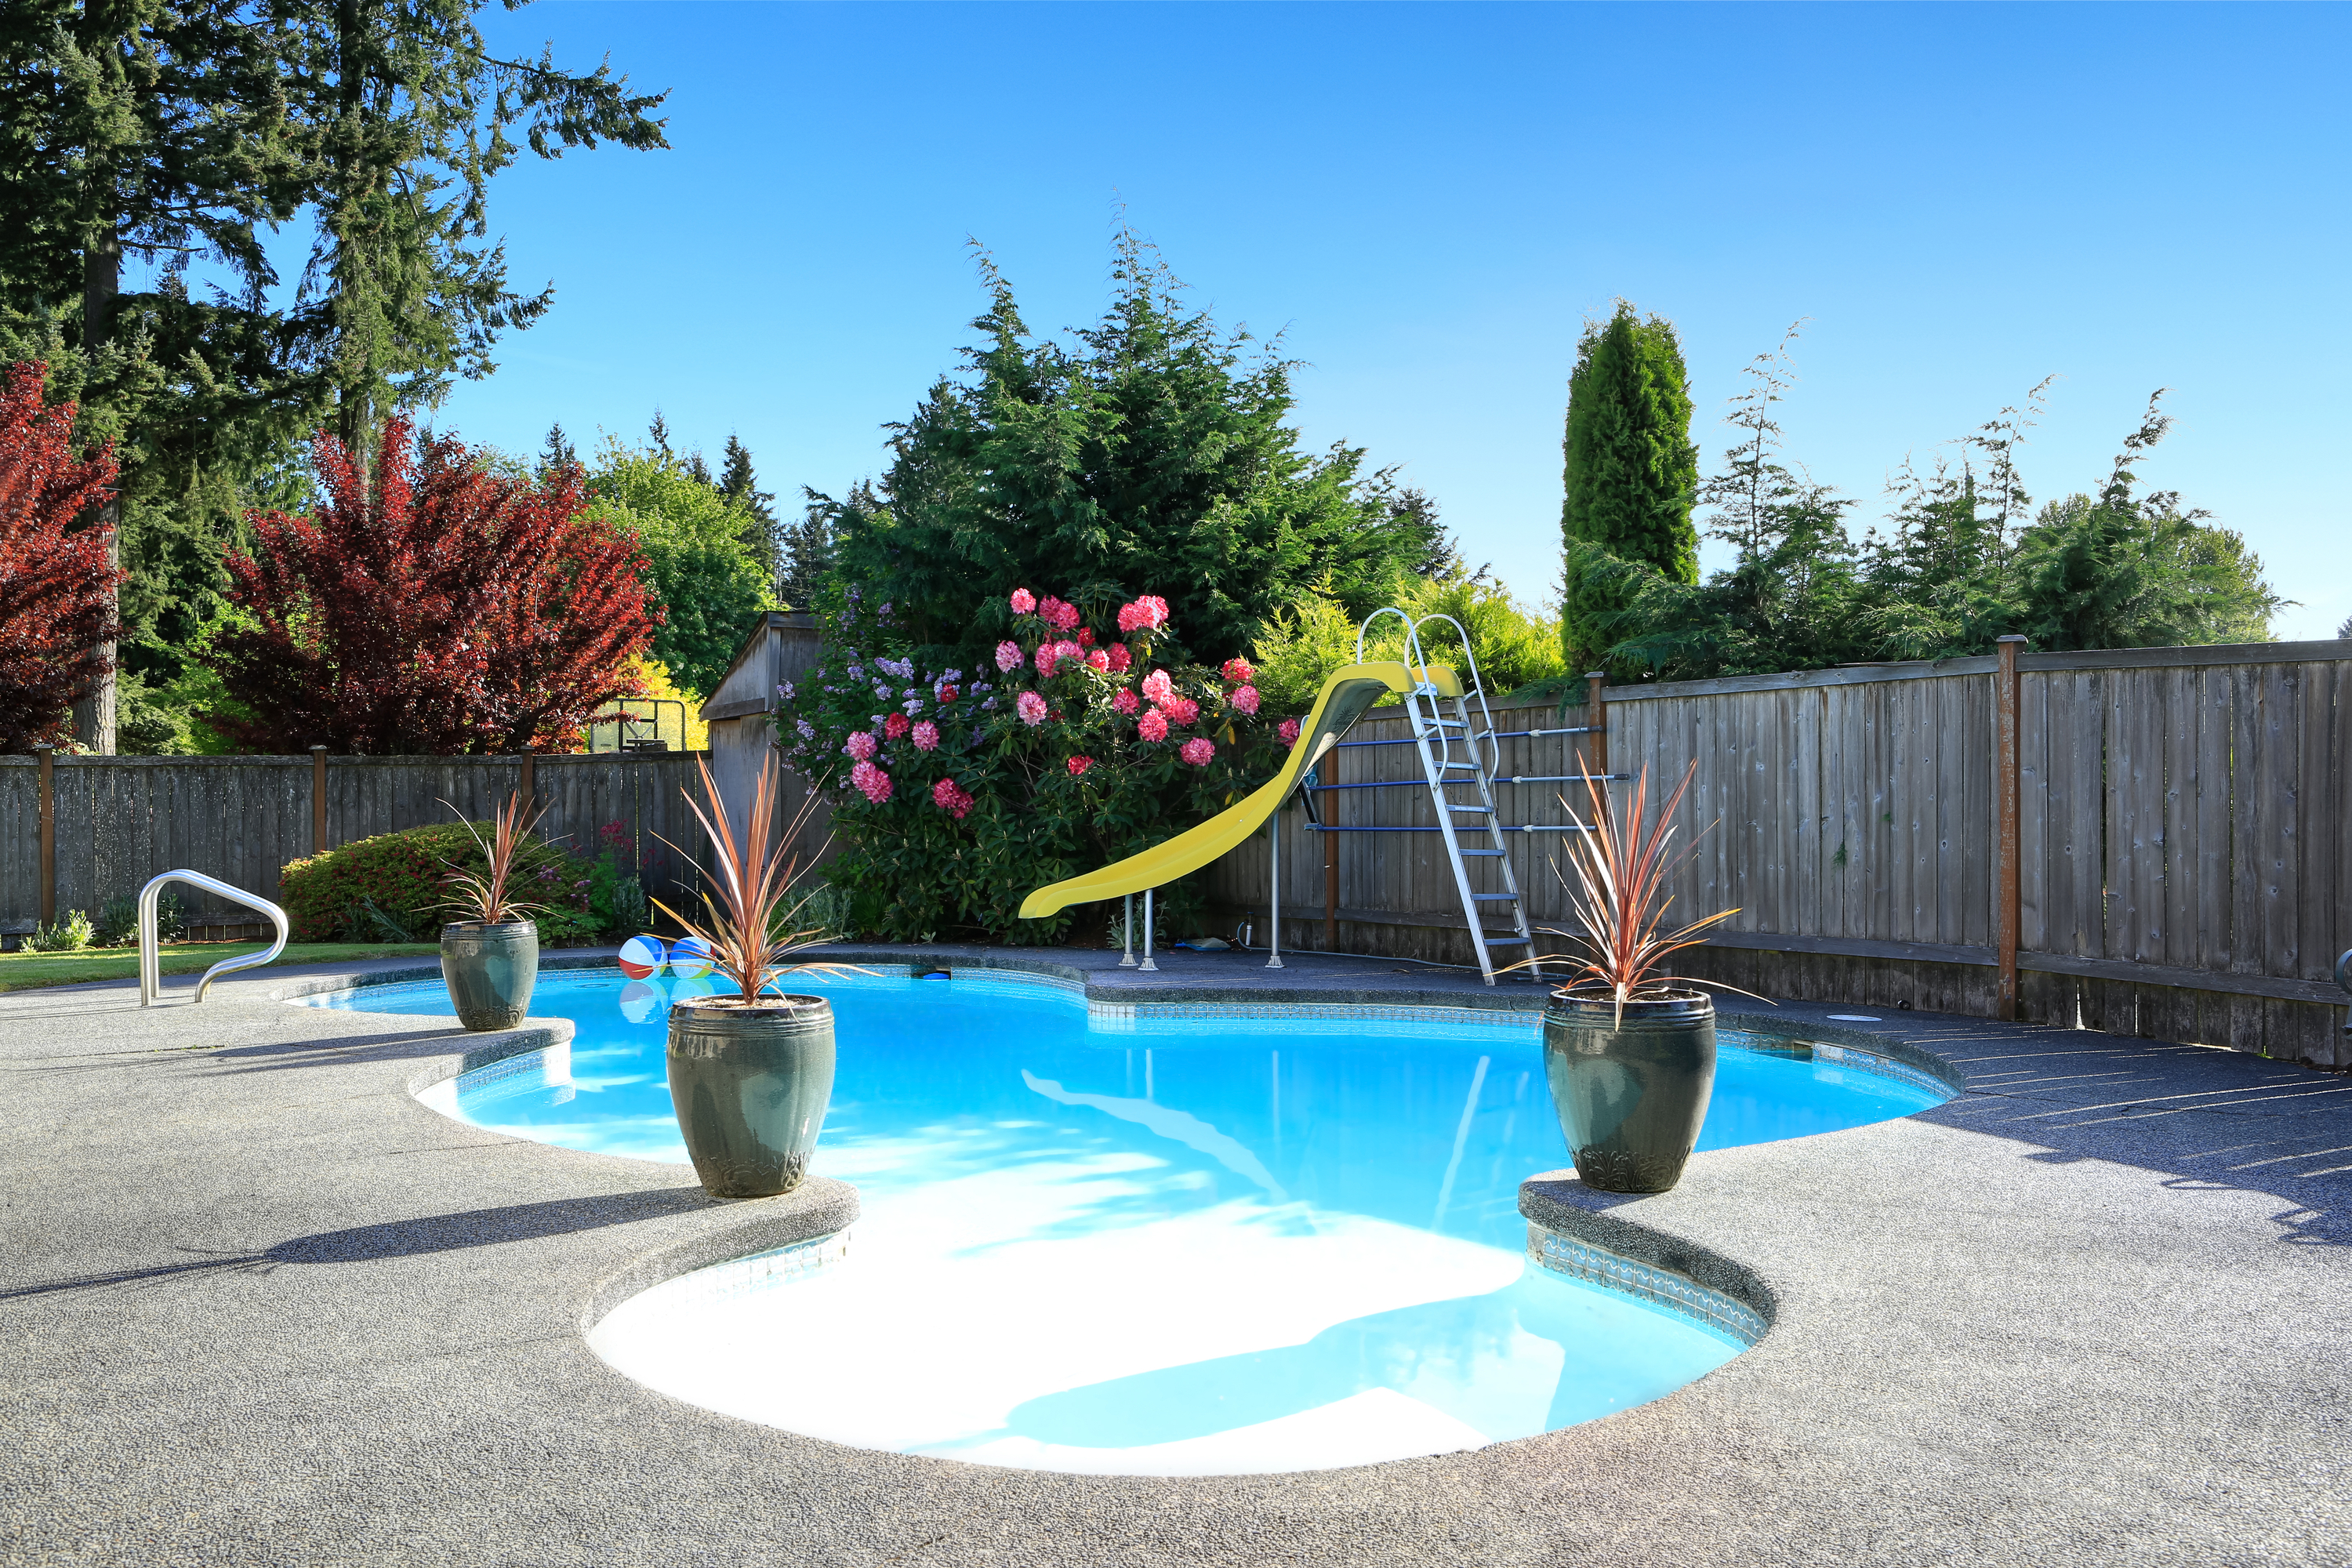 pool | swimming pool | swimming pool designs | pool designs | outdoor living | summer | warm weather | backyard | backyard design